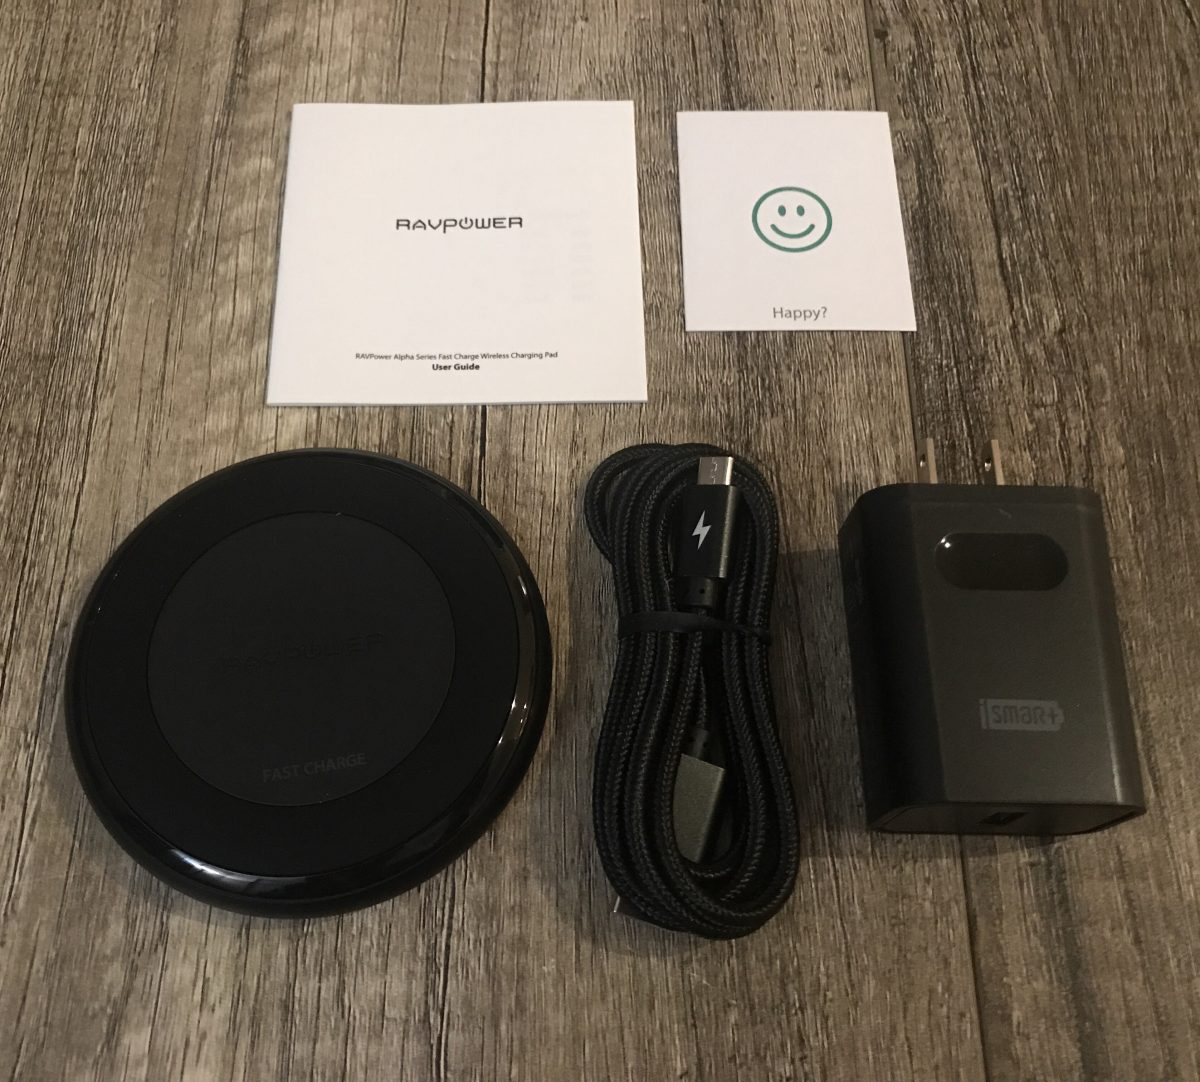 RavPower Wireless Charging Base Is the Perfect Companion for Your iPhone X